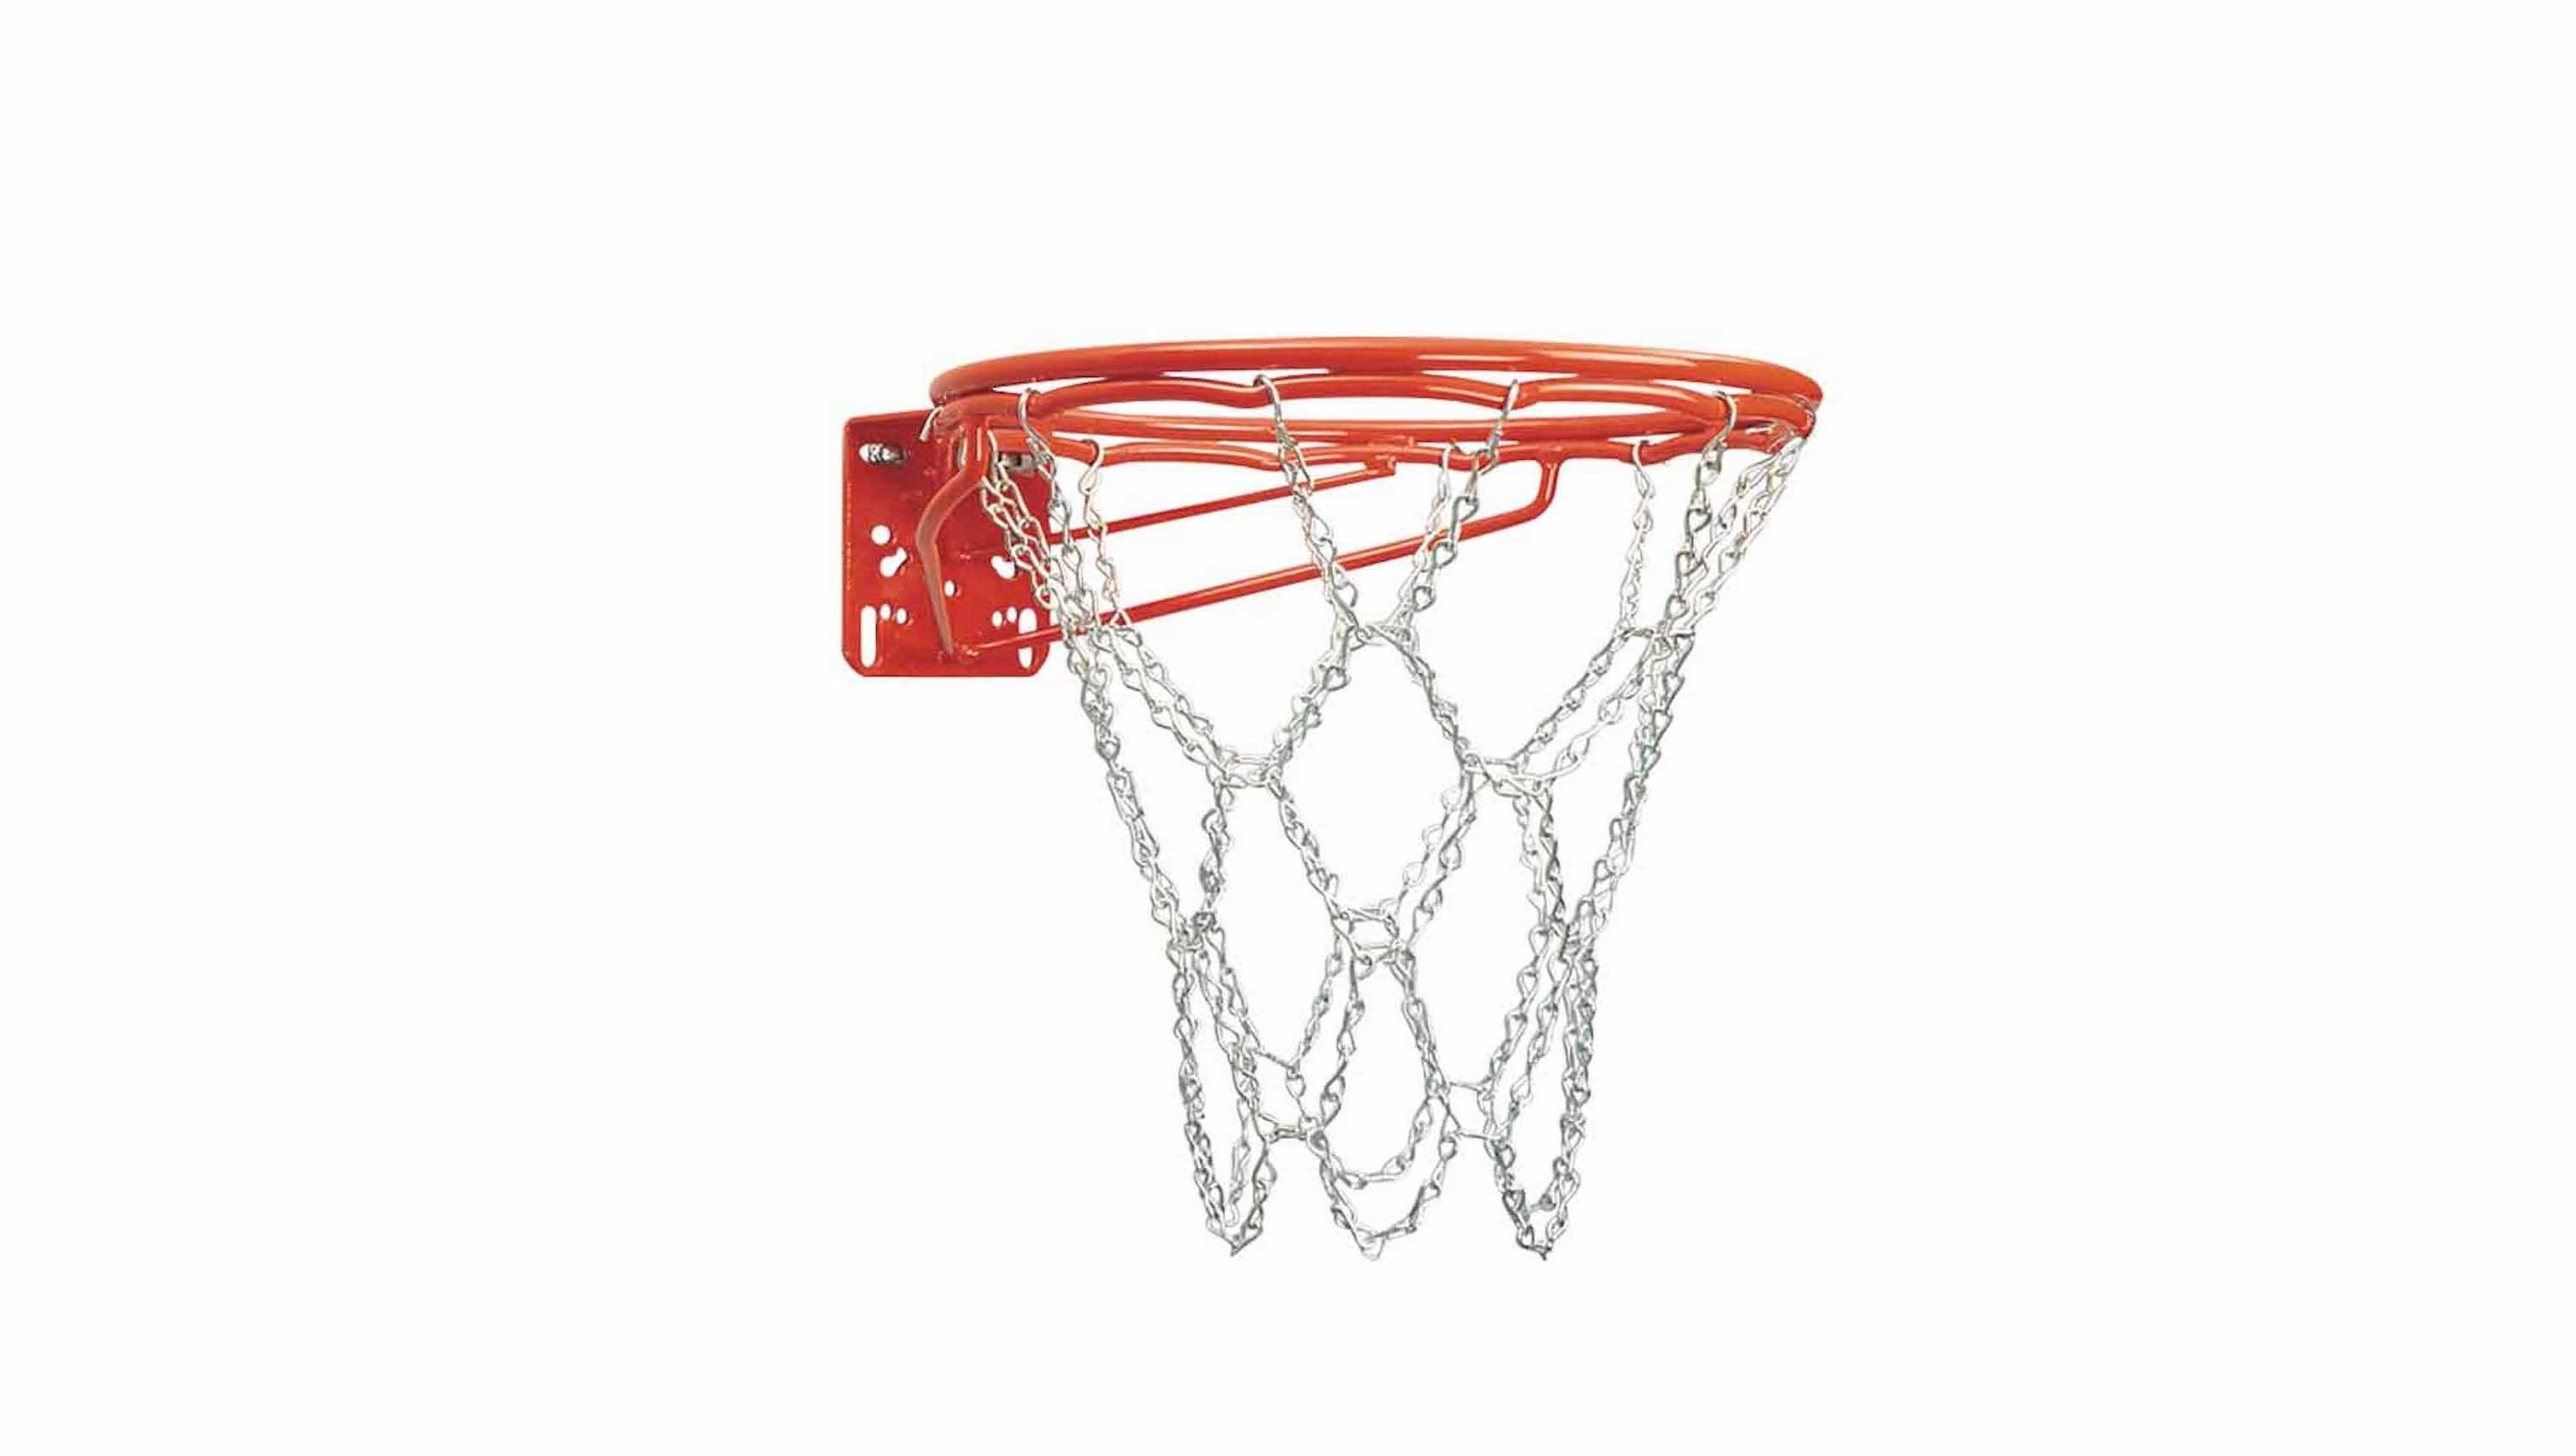 Front Mount Super Goal with Chain Net